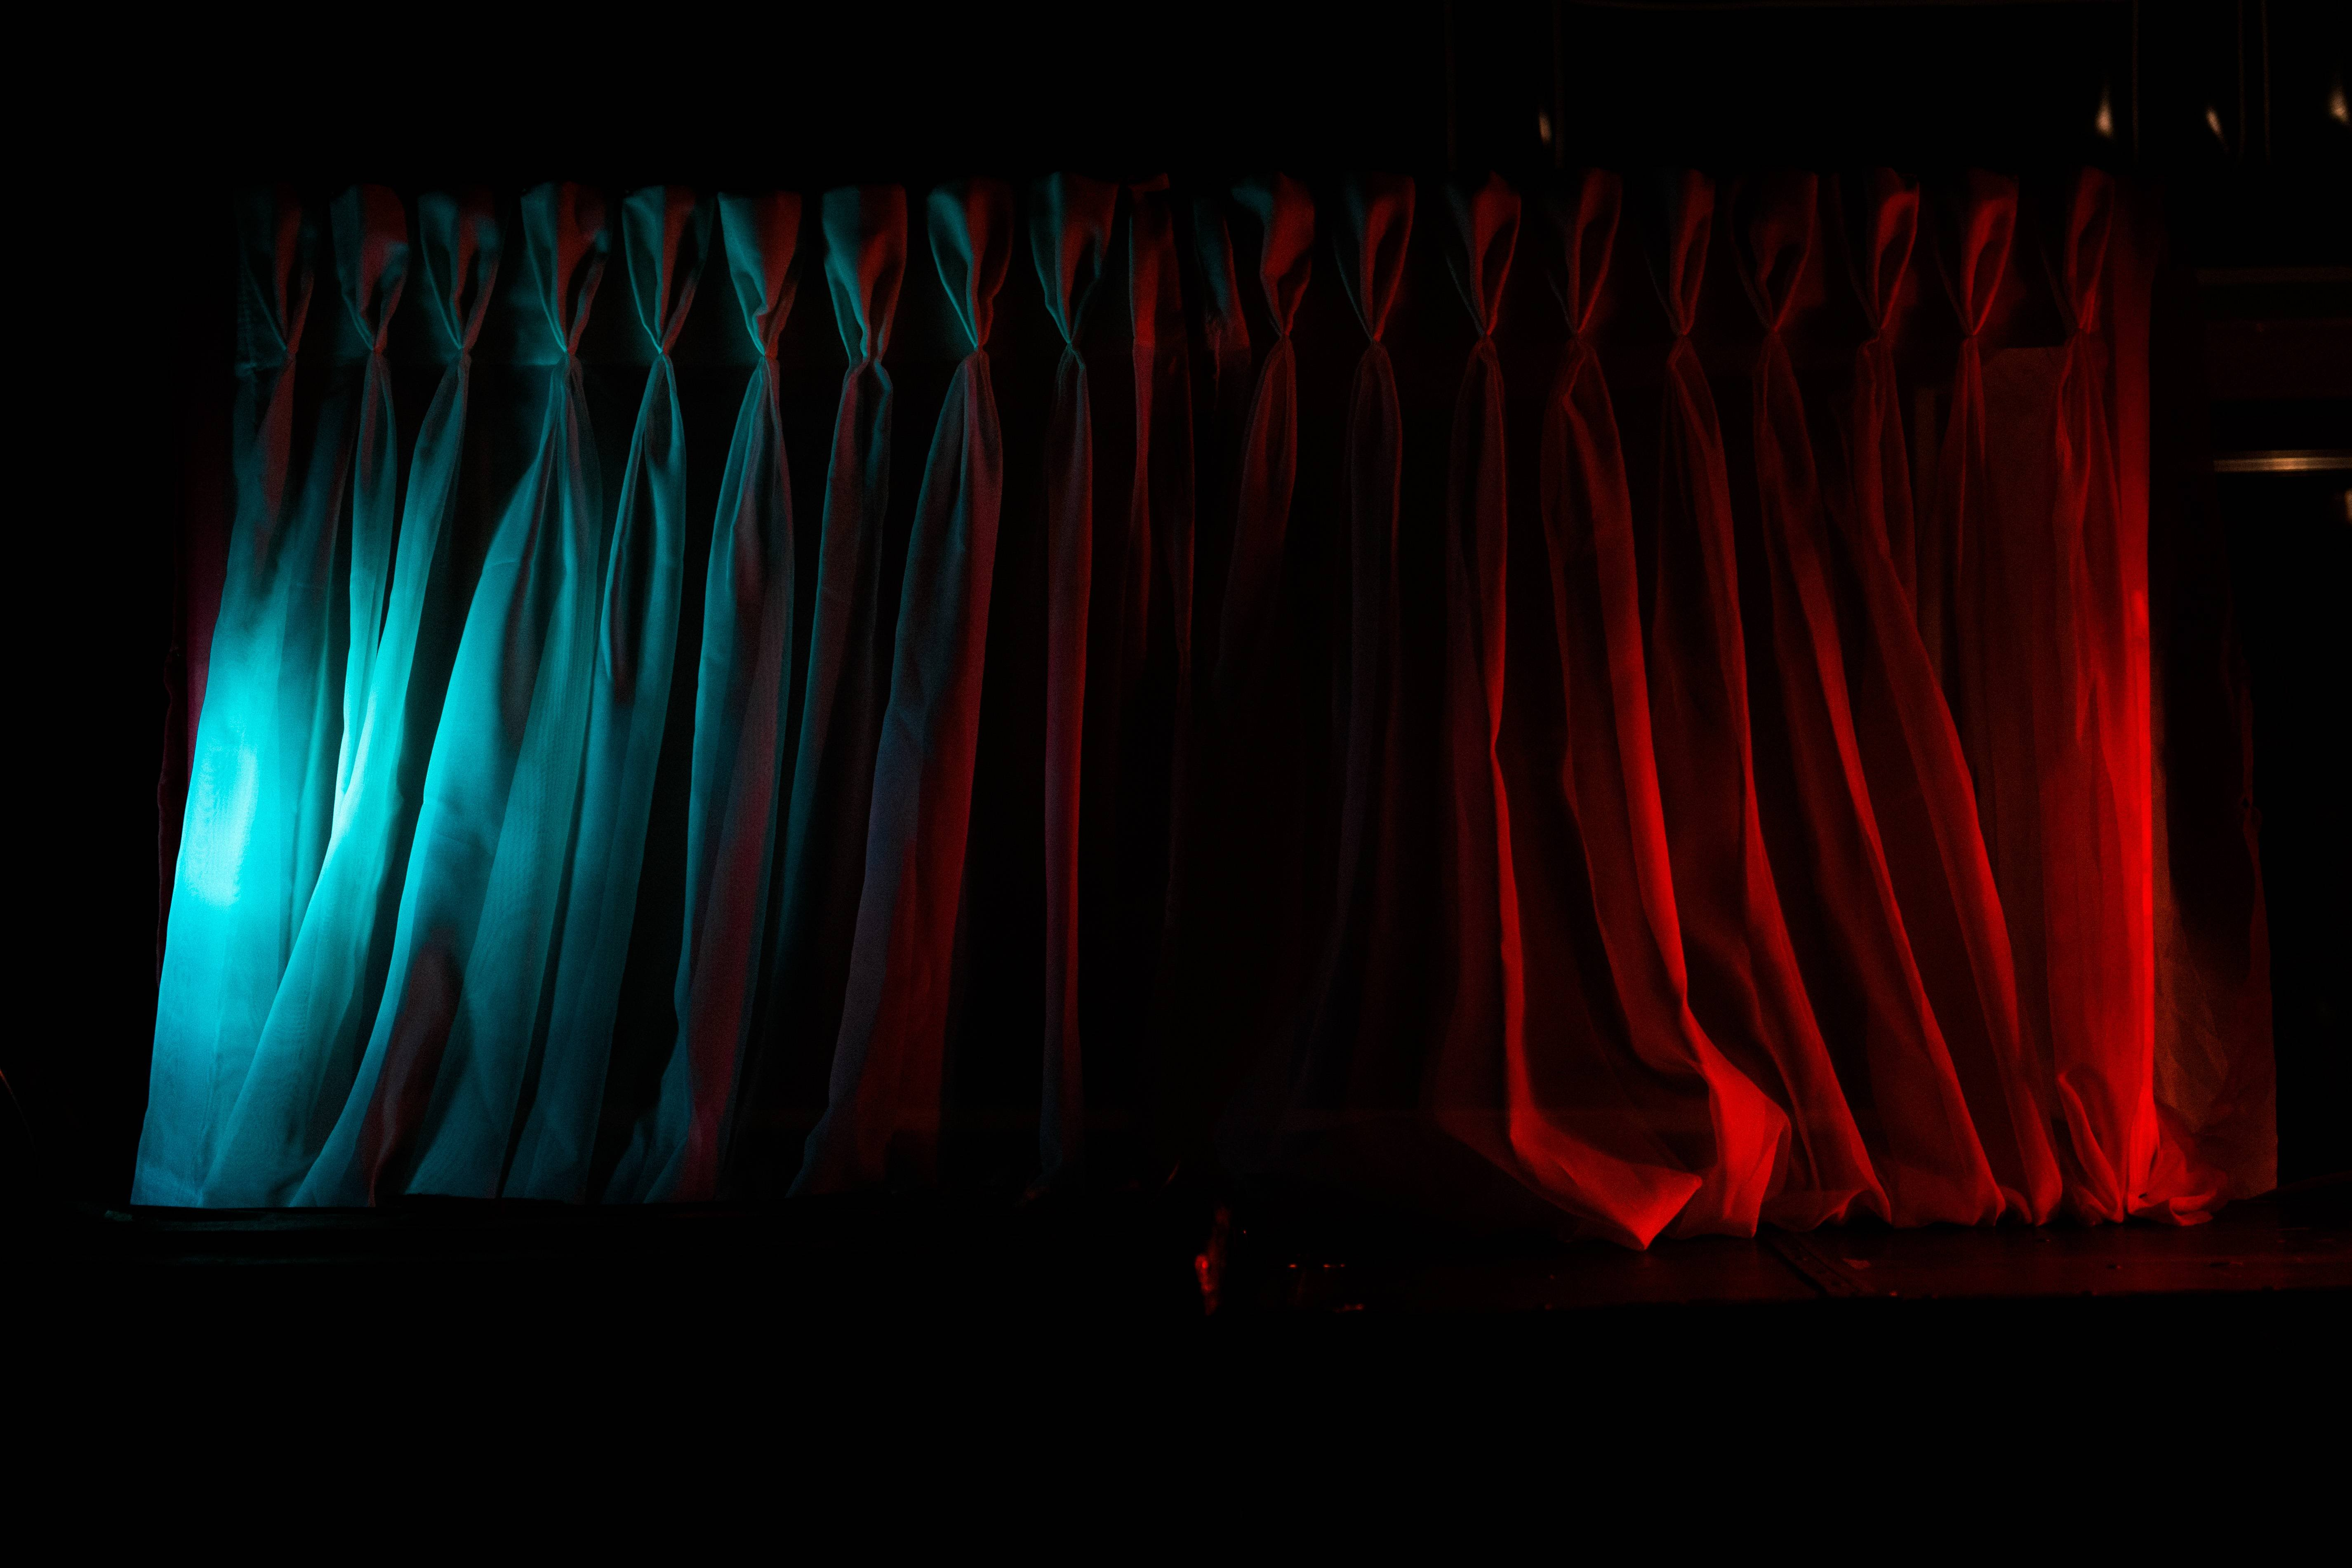 Curtains Dramatically Lit 4k Wallpaper HD Wallpapers Download Free Images Wallpaper [1000image.com]